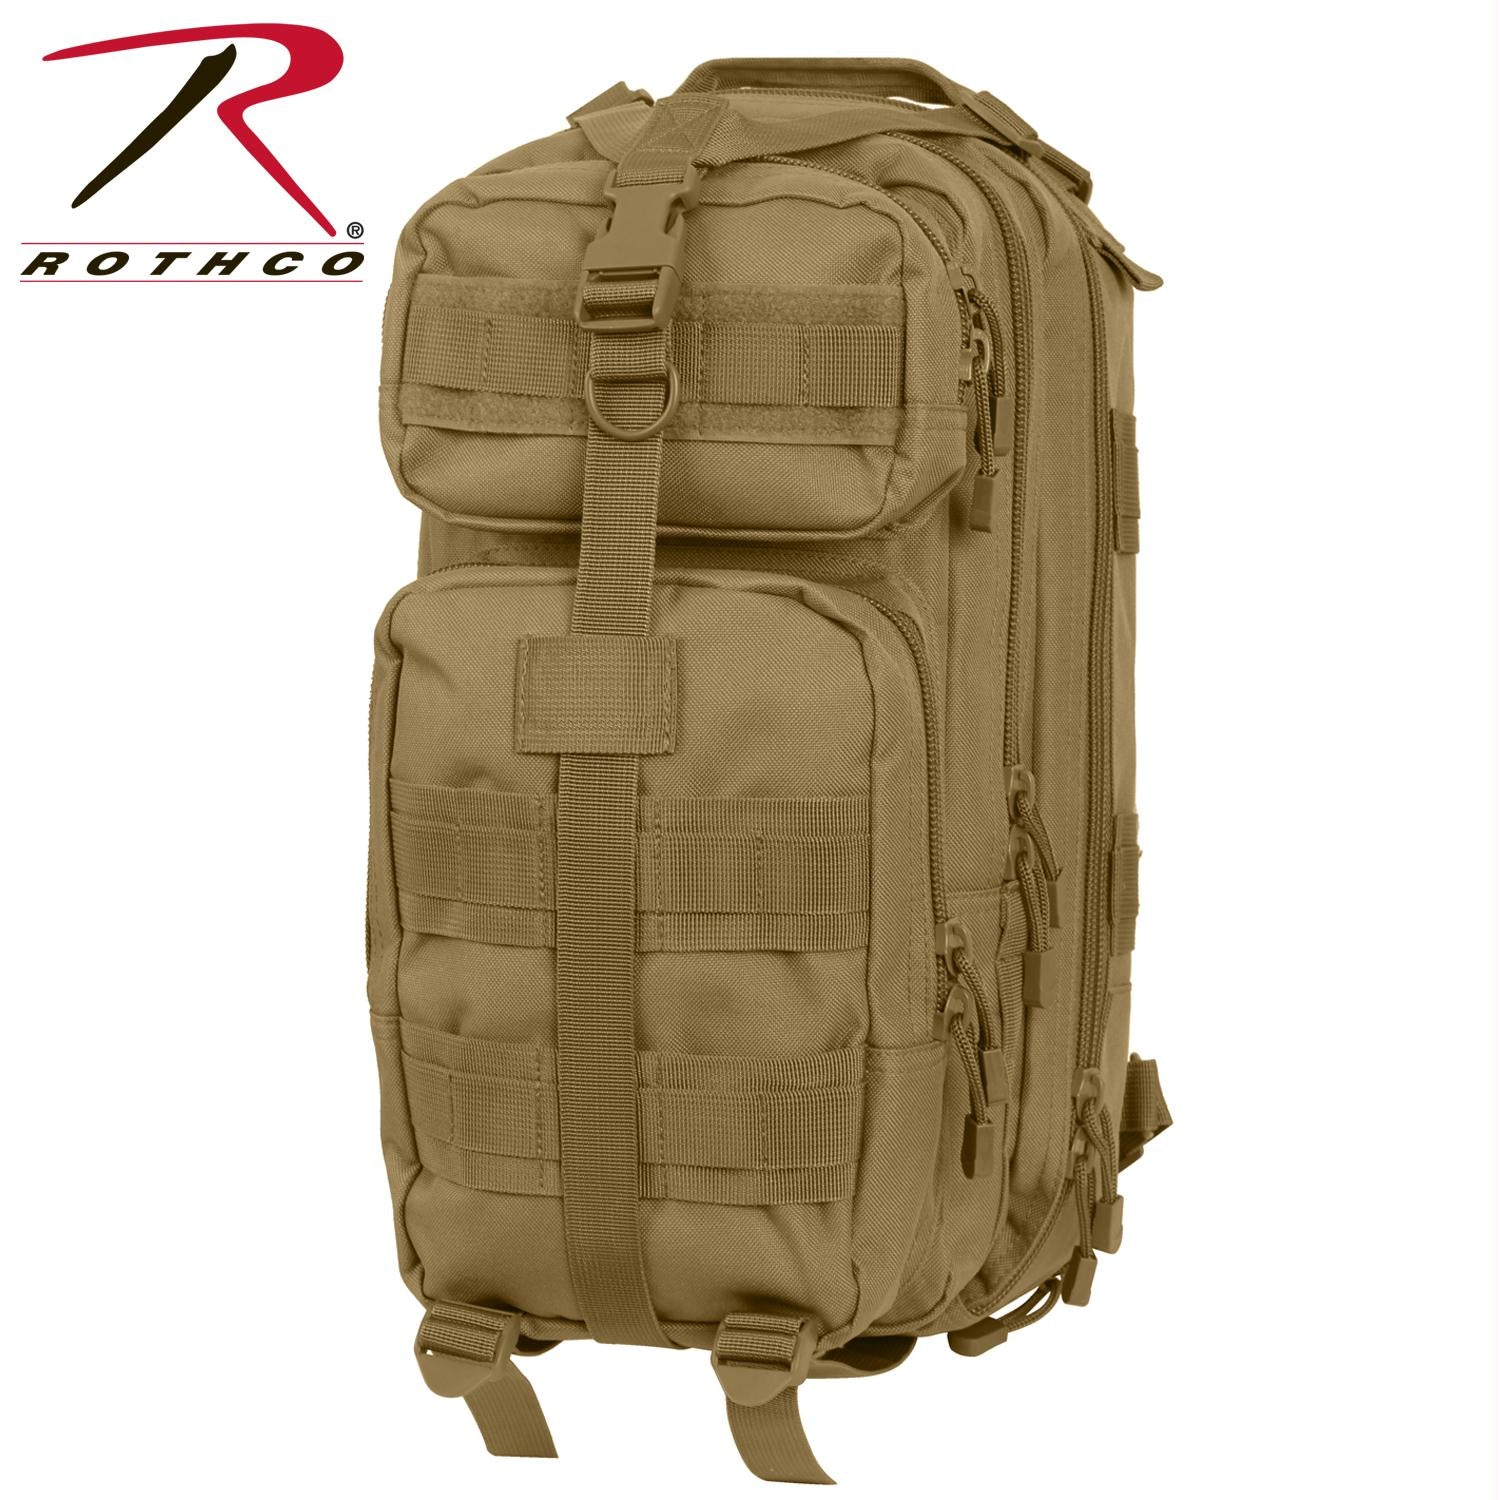 Rothco Convertible Medium Transport Pack - Coyote Brown